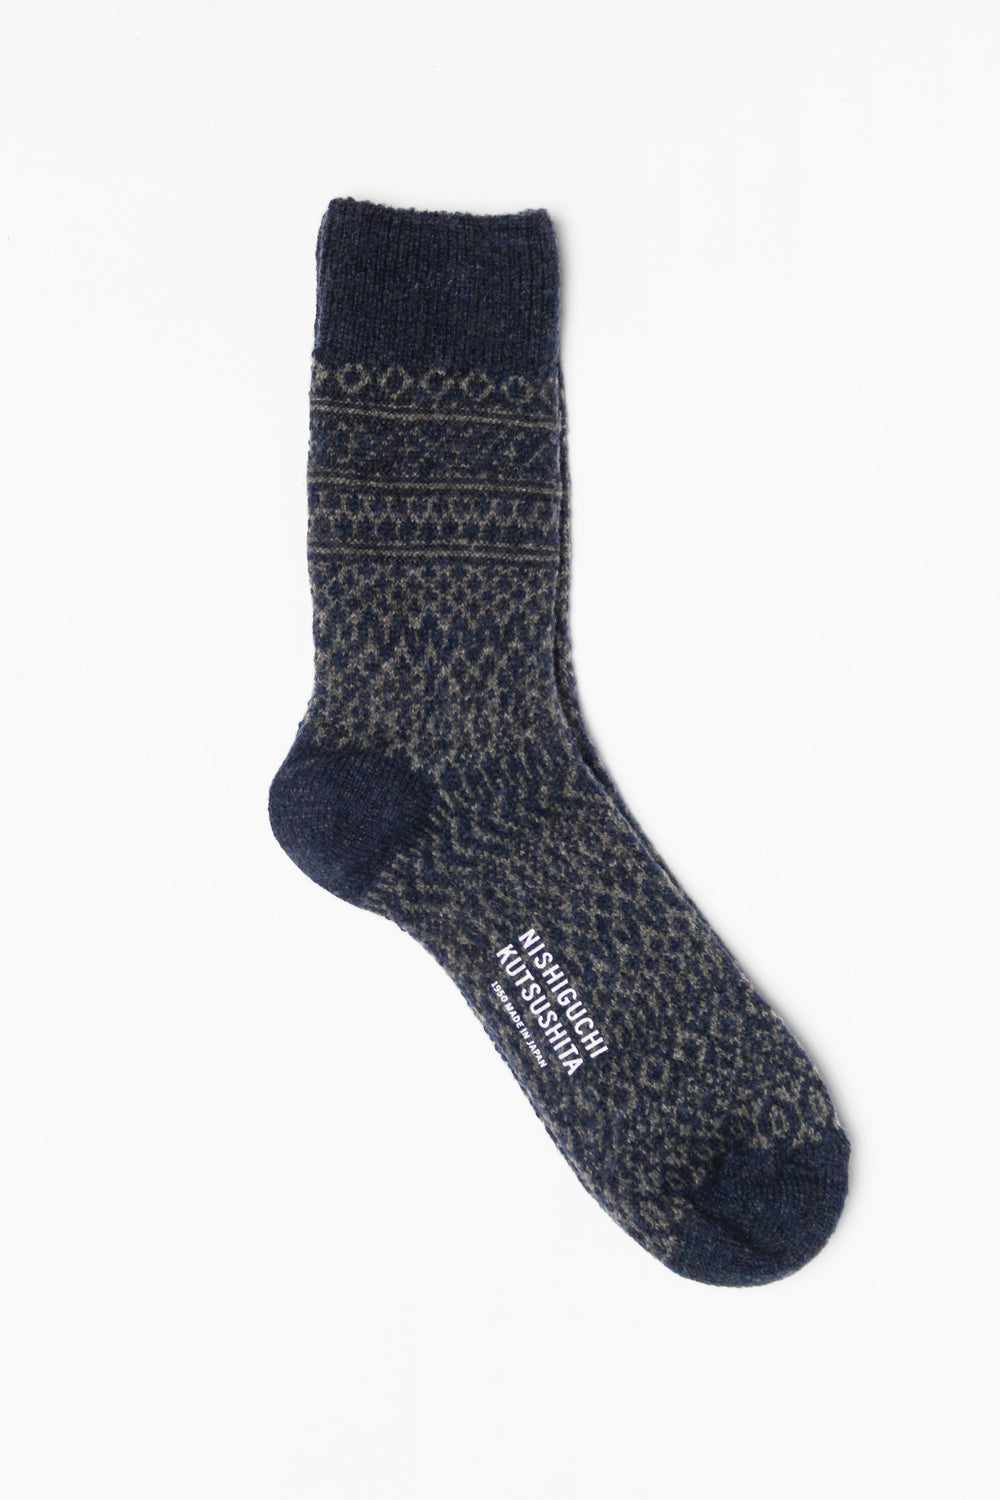 Wool Jacquard Socks, Navy with Grey (Size M Only)